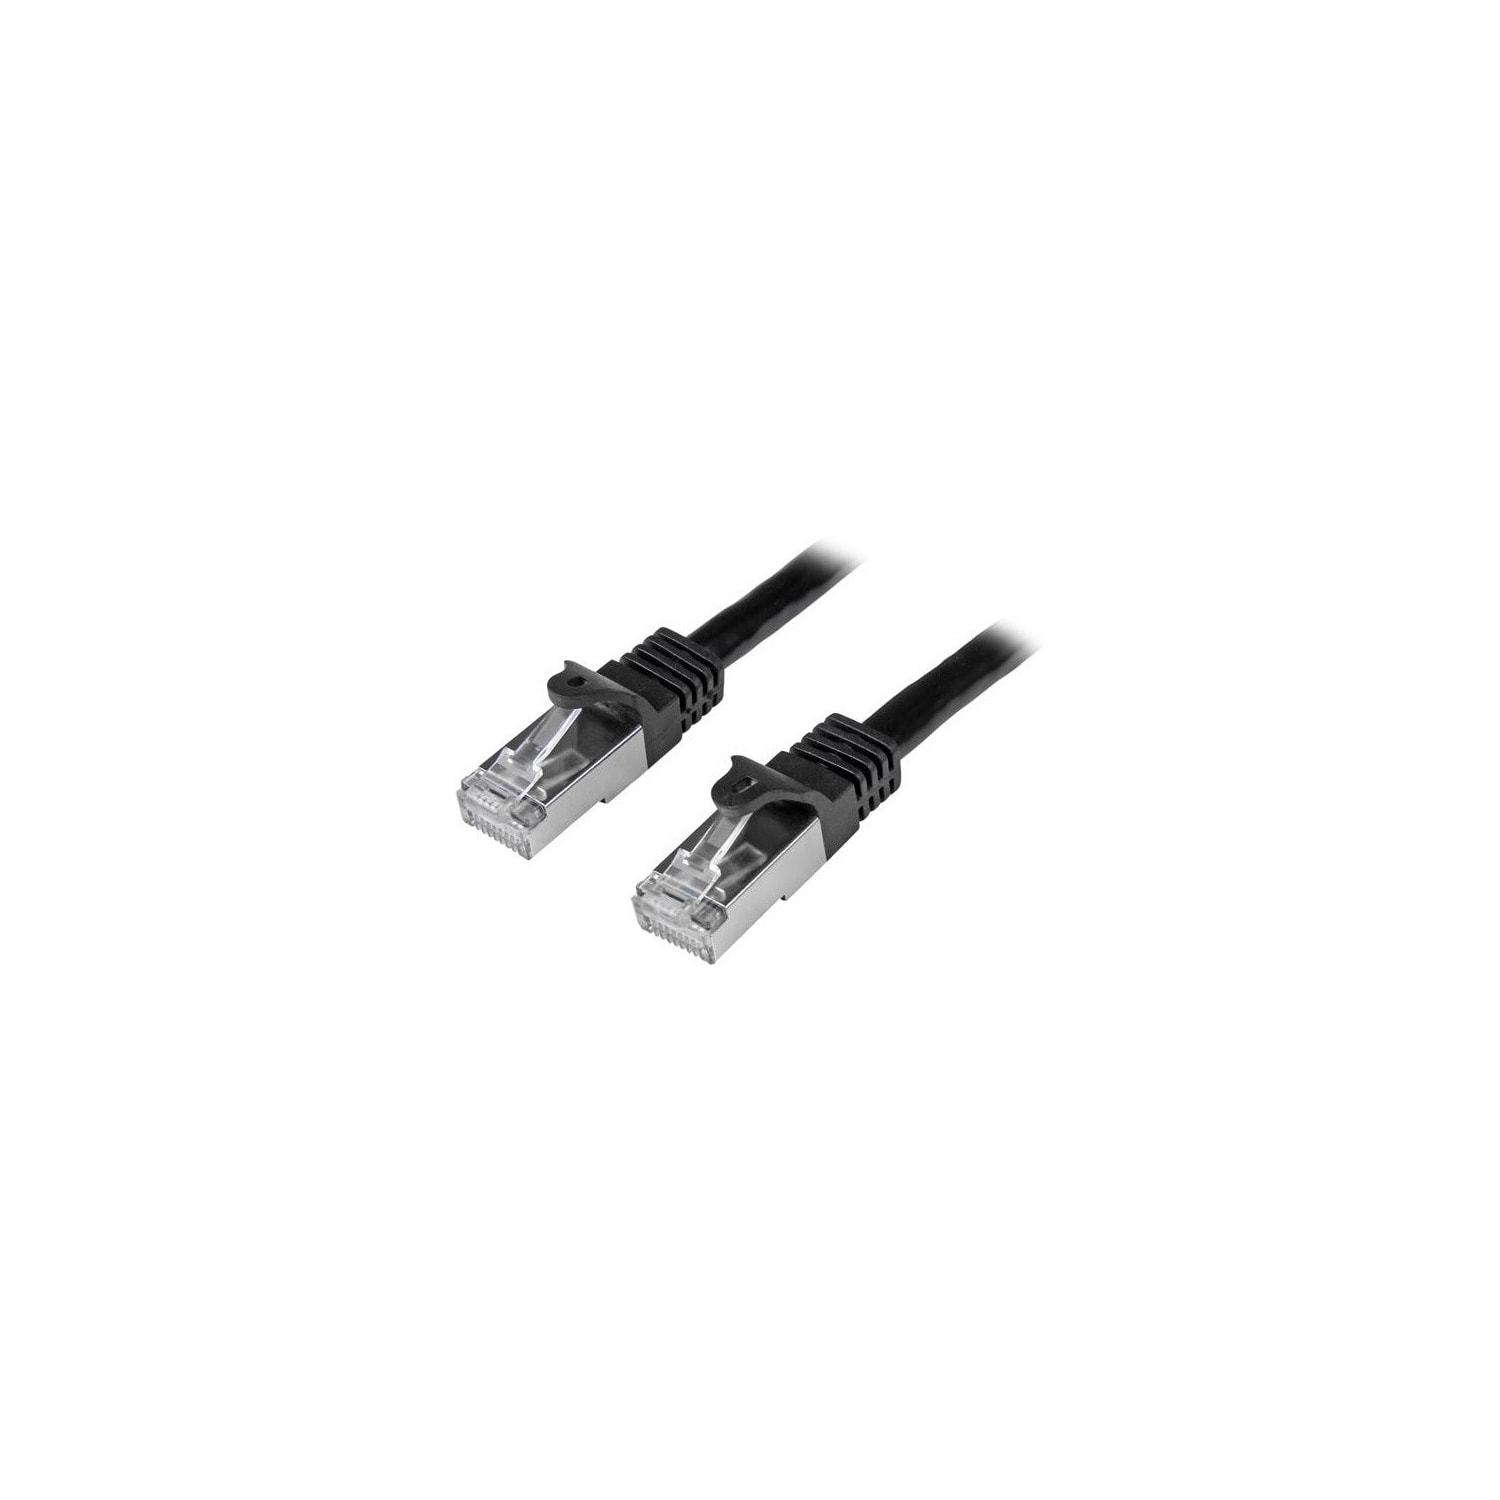 Buy Startechcom Category 6 Network Cable For Device Switch Patch Panel Wiring Hub